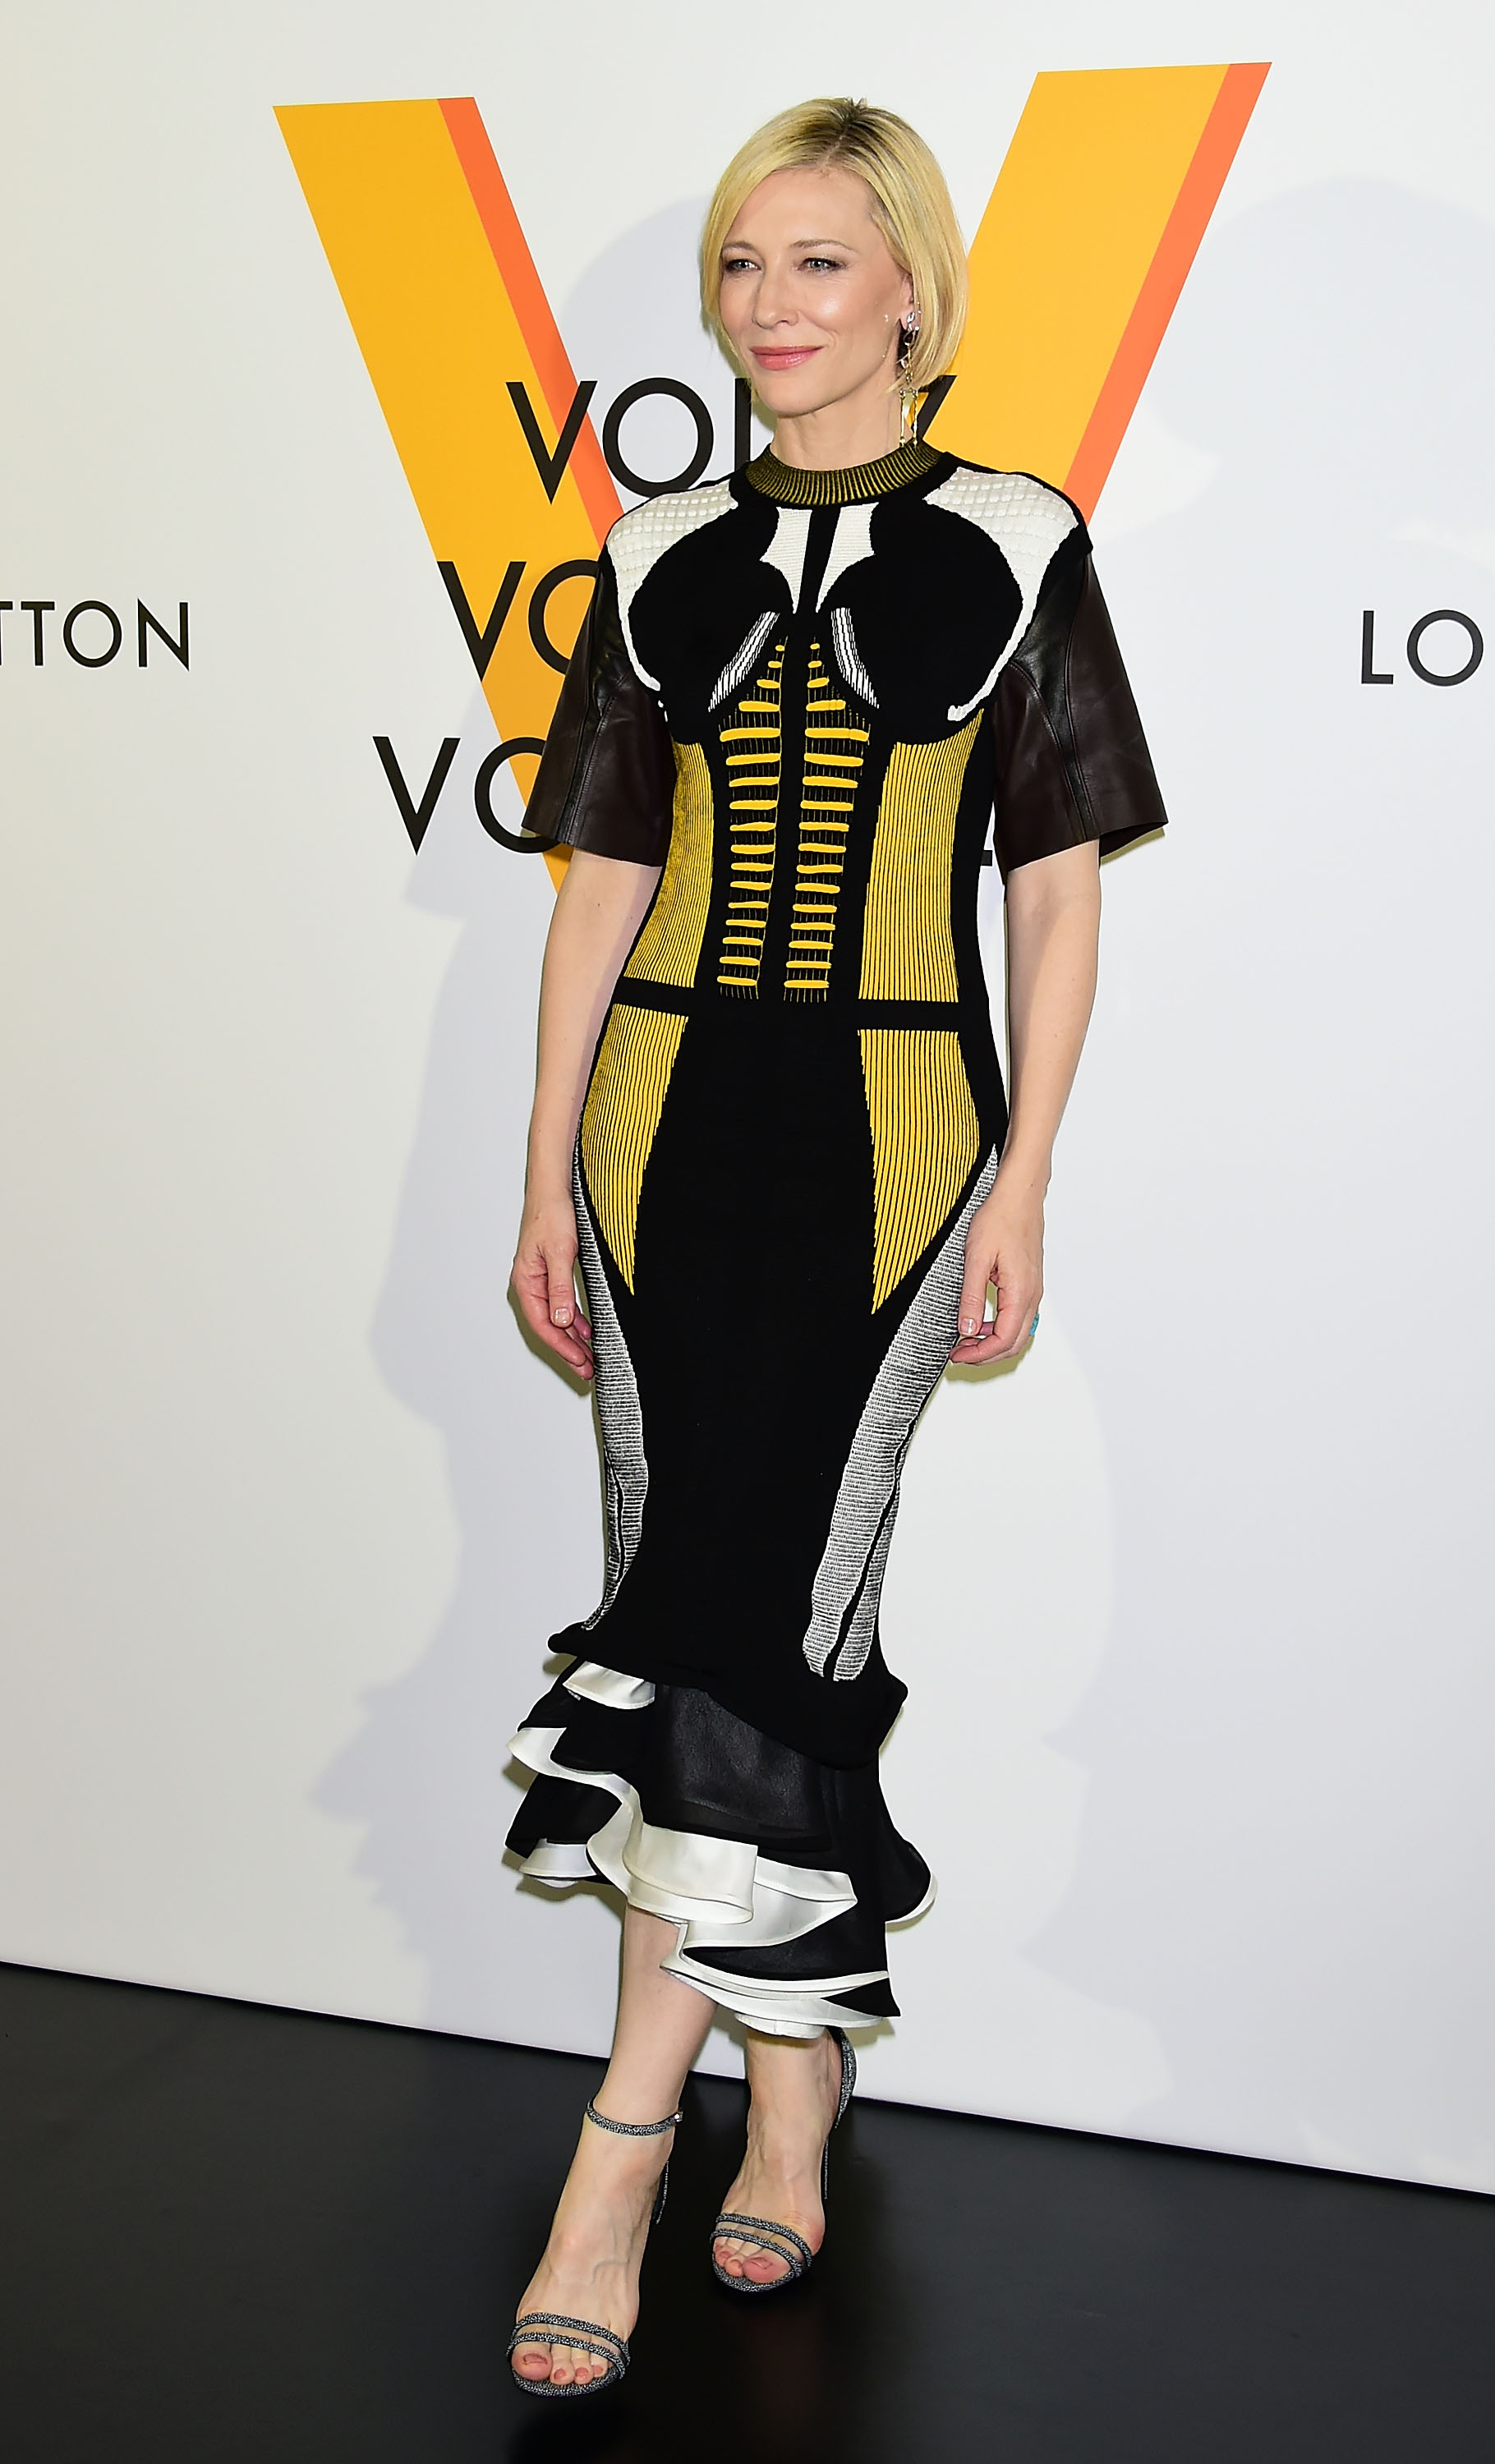 Actress Cate Blanchett attends the Louis Vuitton Exhibition in Tokyo, Japan. Photo / Getty Images